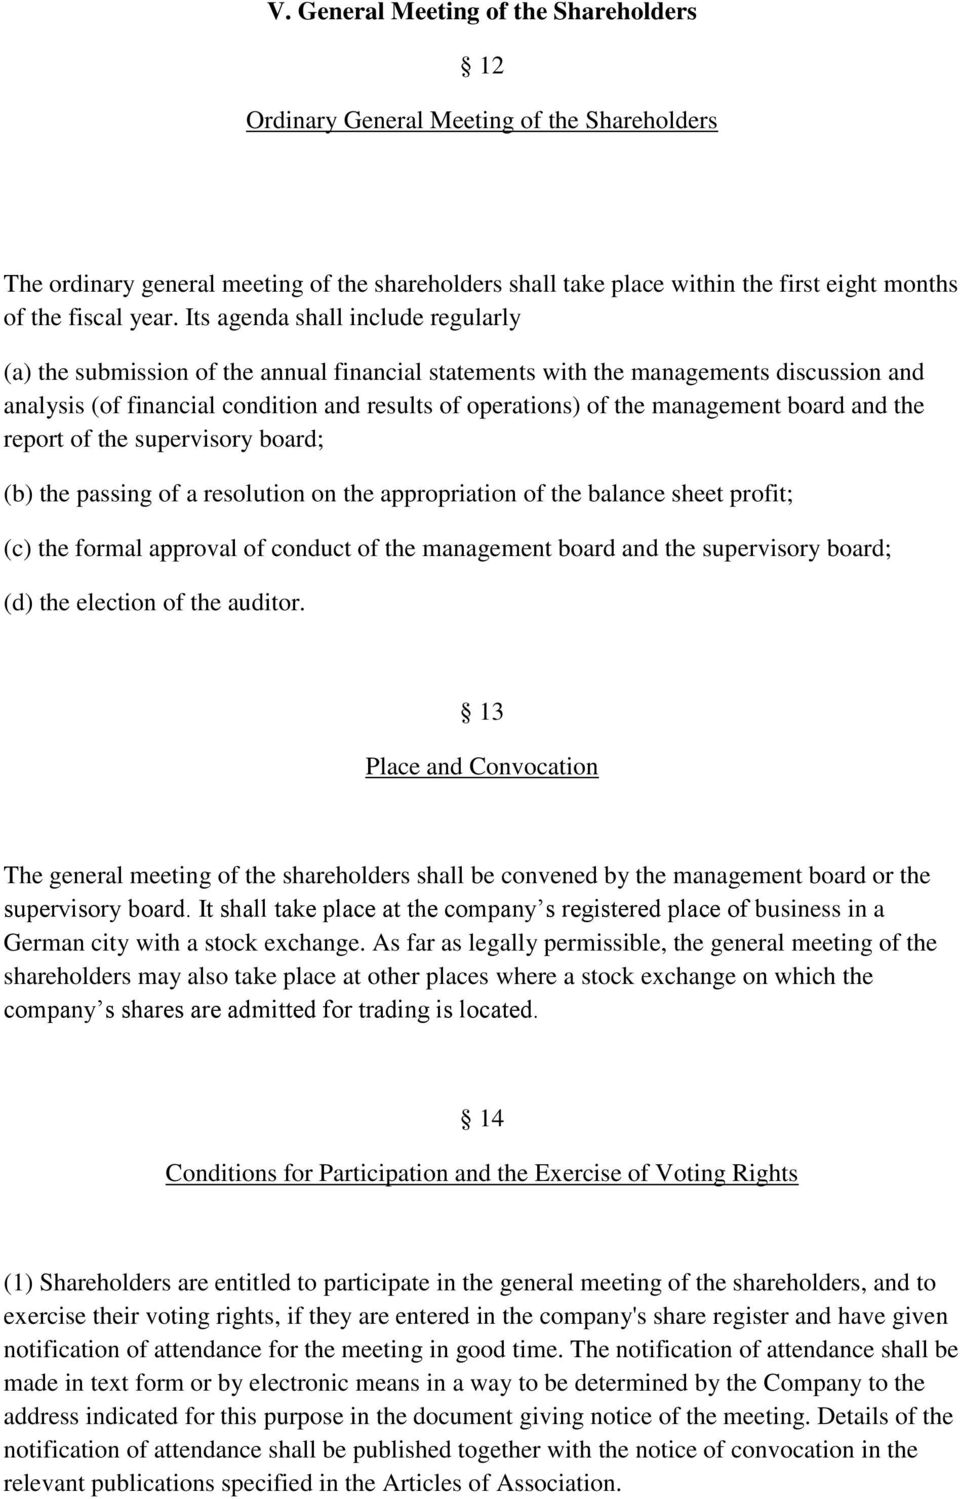 management board and the report of the supervisory board; (b) the passing of a resolution on the appropriation of the balance sheet profit; (c) the formal approval of conduct of the management board